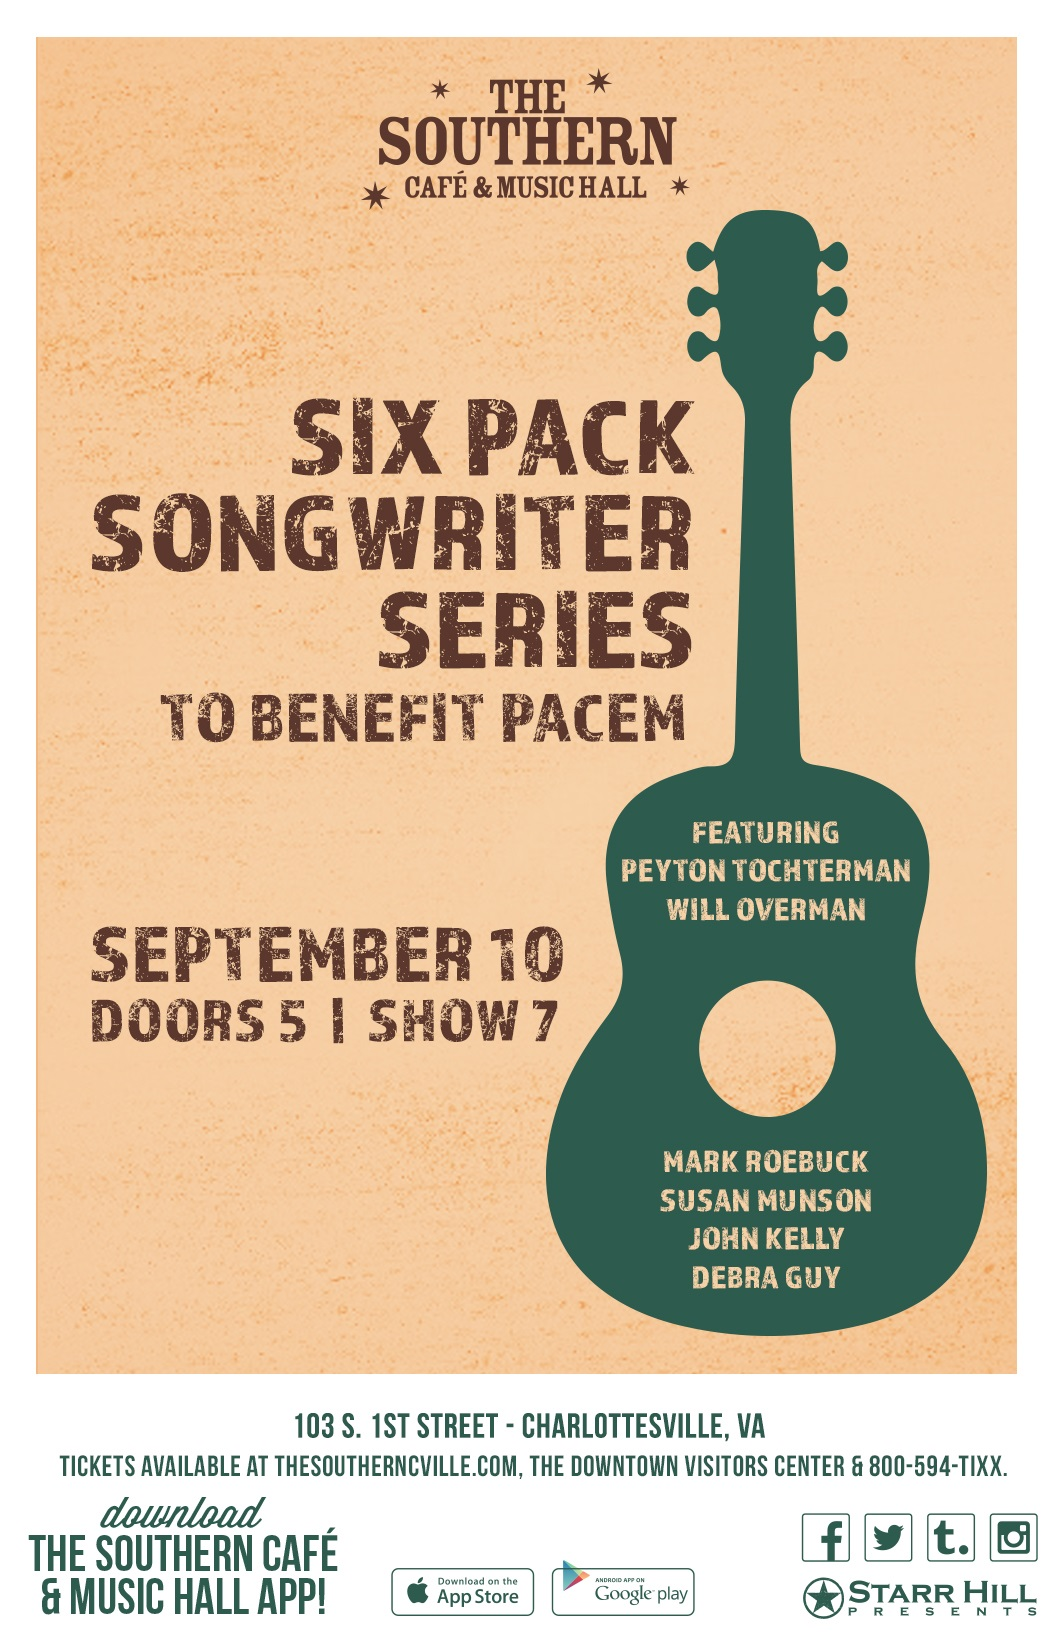 Six Pack Songwriter Showcase to Benefit PACEM